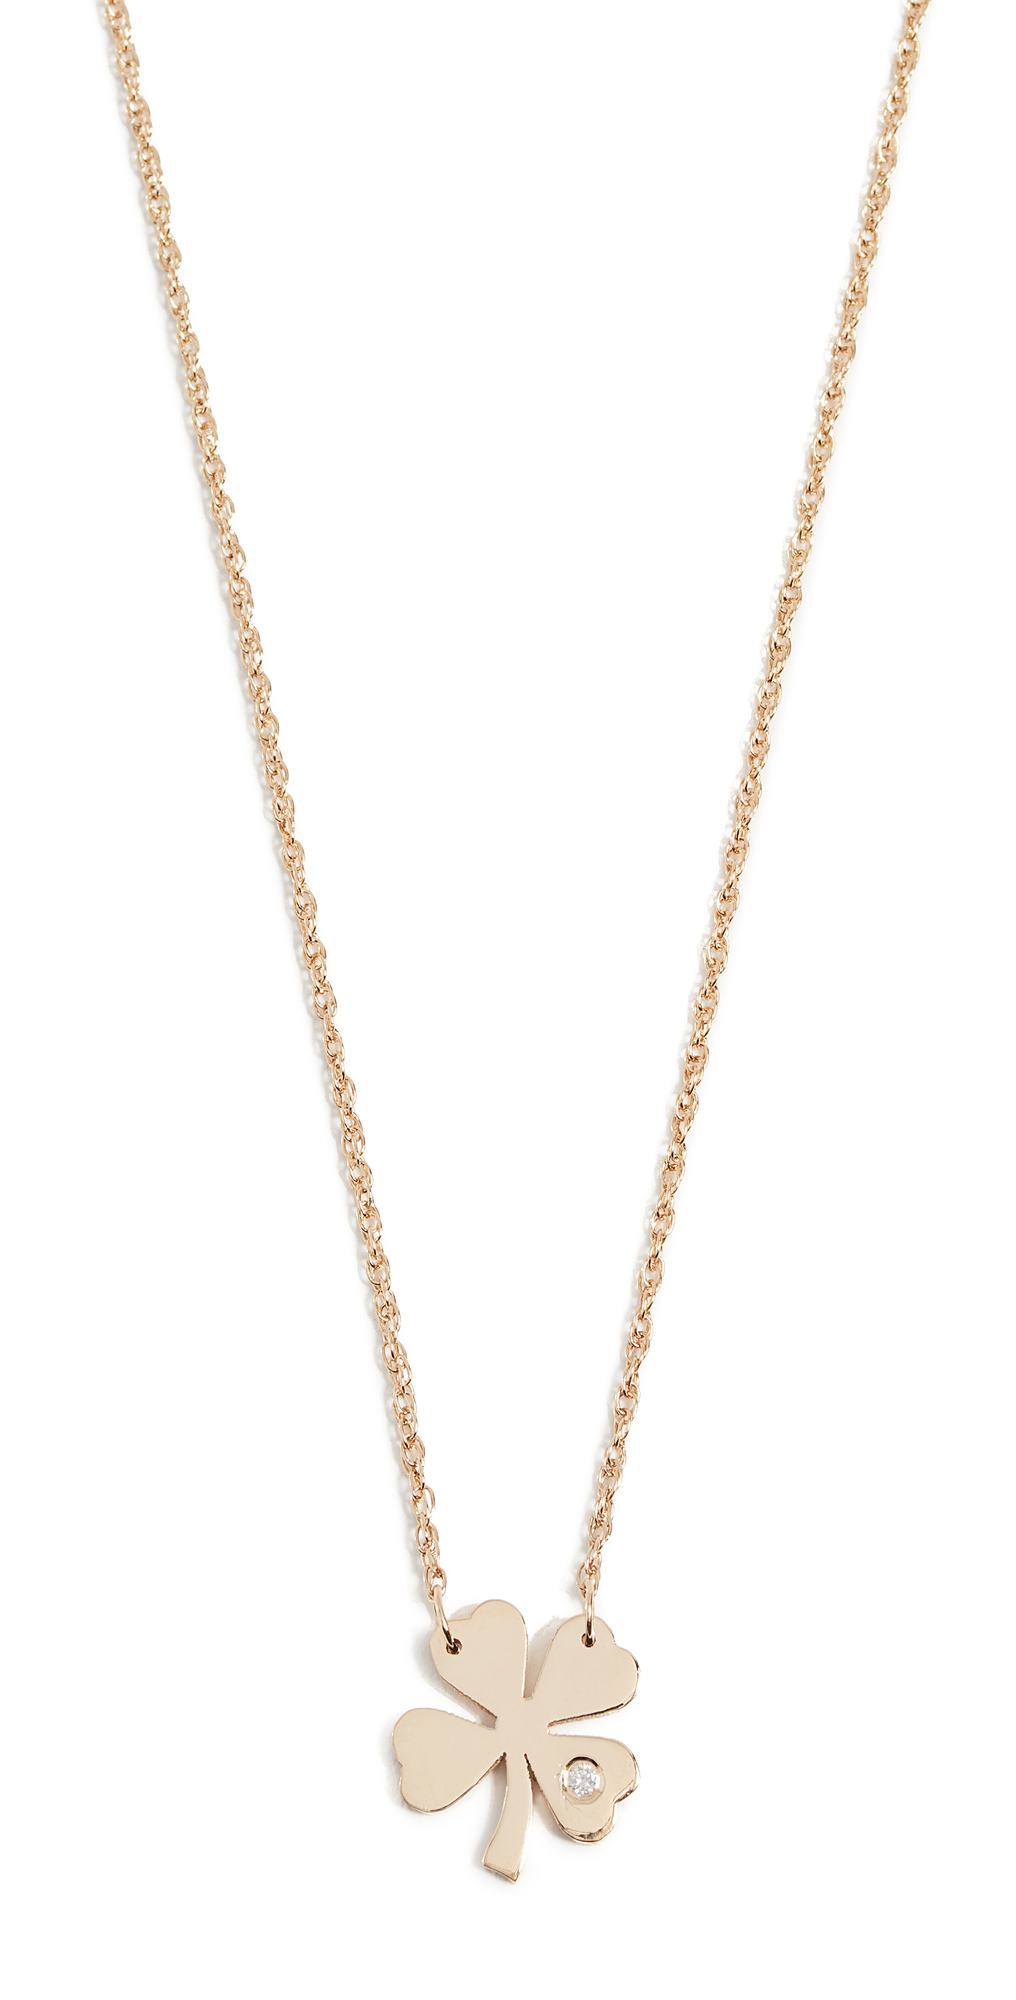 Clover Necklace with Diamond